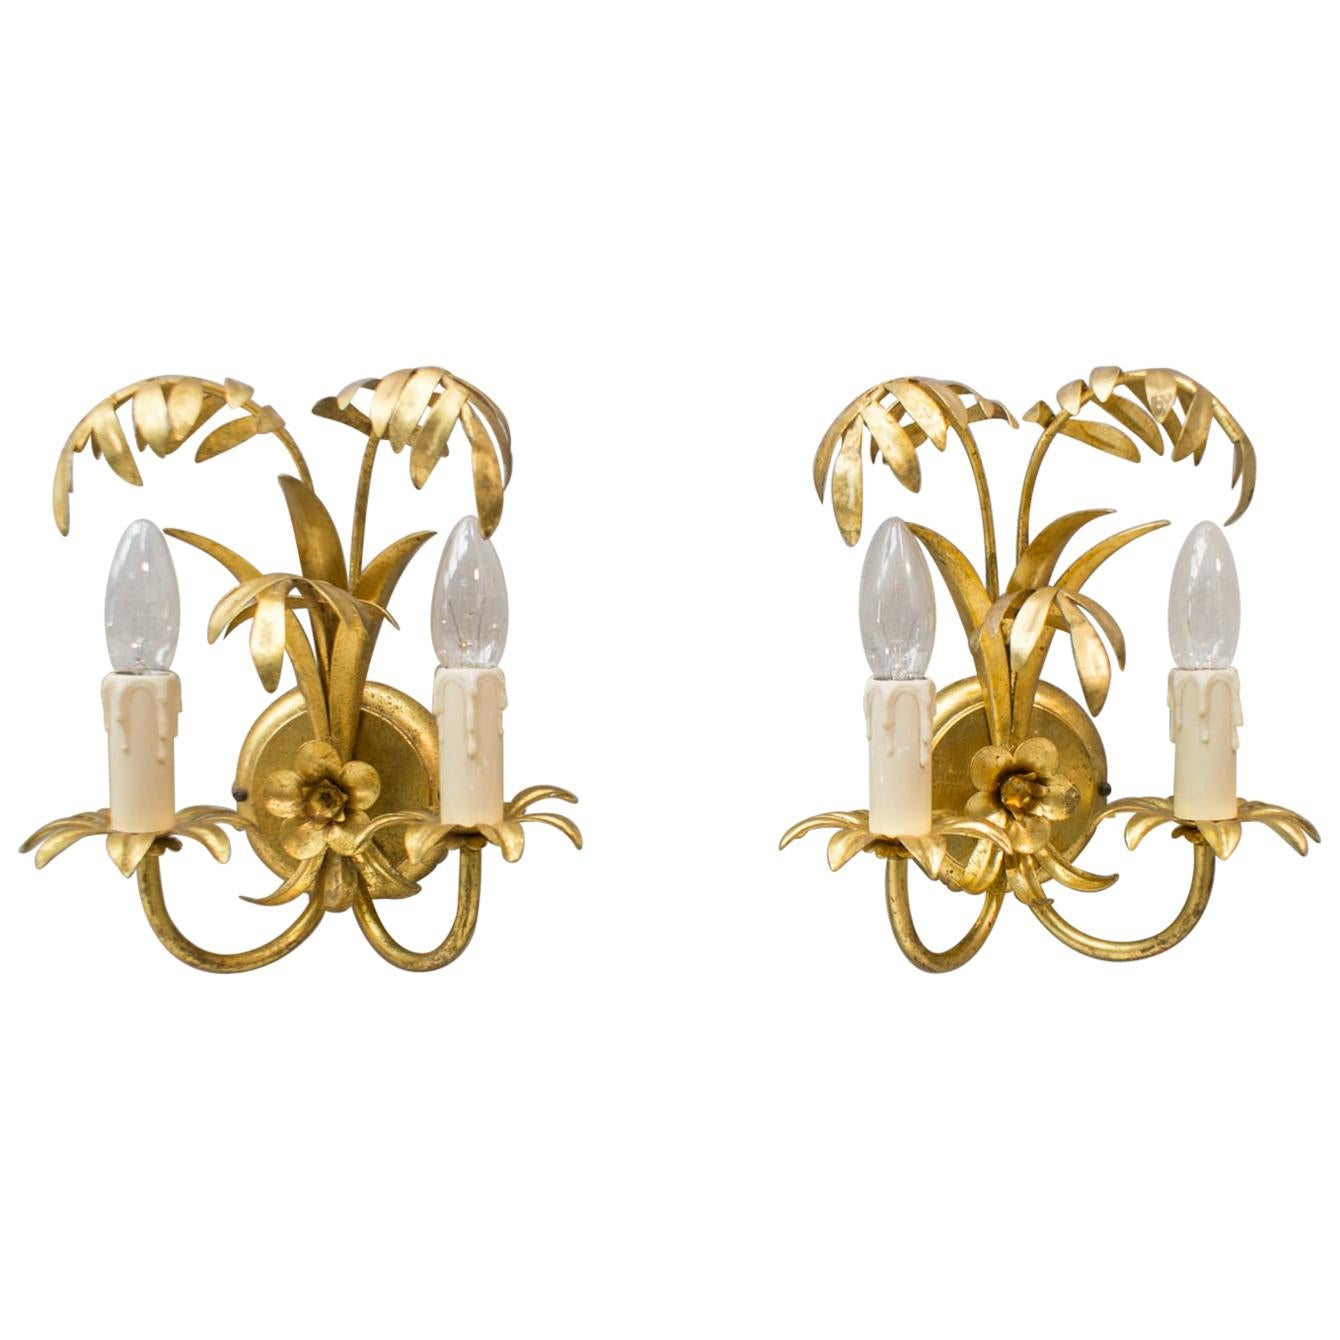 Pair of Hollywood Regency Double Palm Wall Lights by Hans Kögl, Germany, 1970s